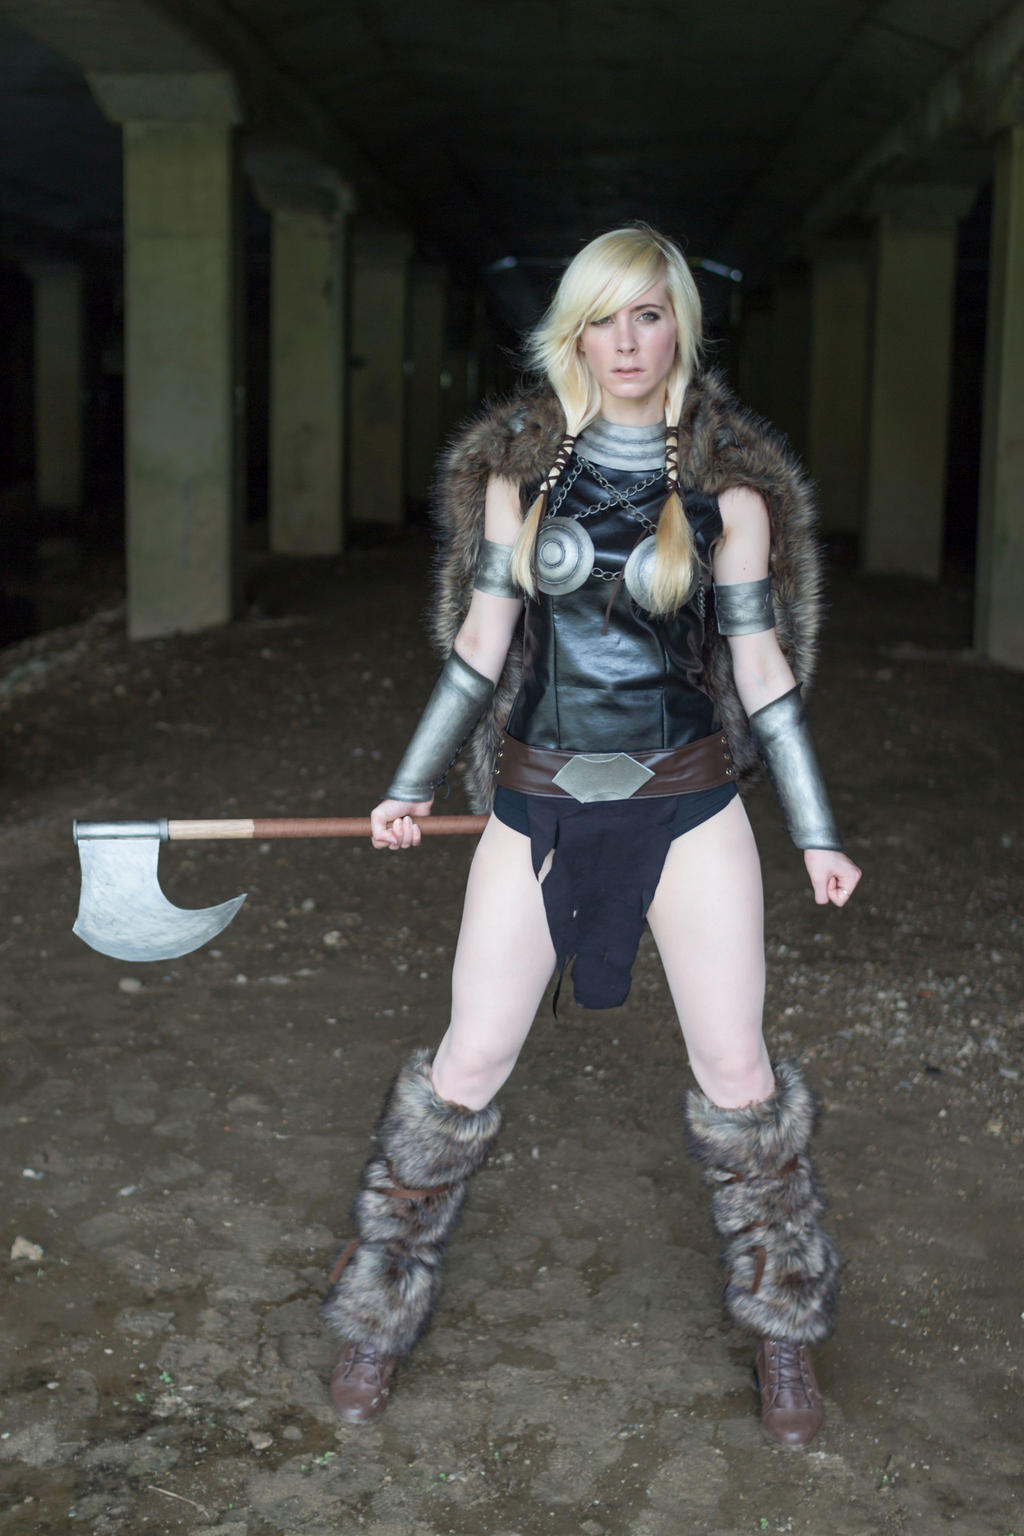 valkyrie marvel costume - photo #28